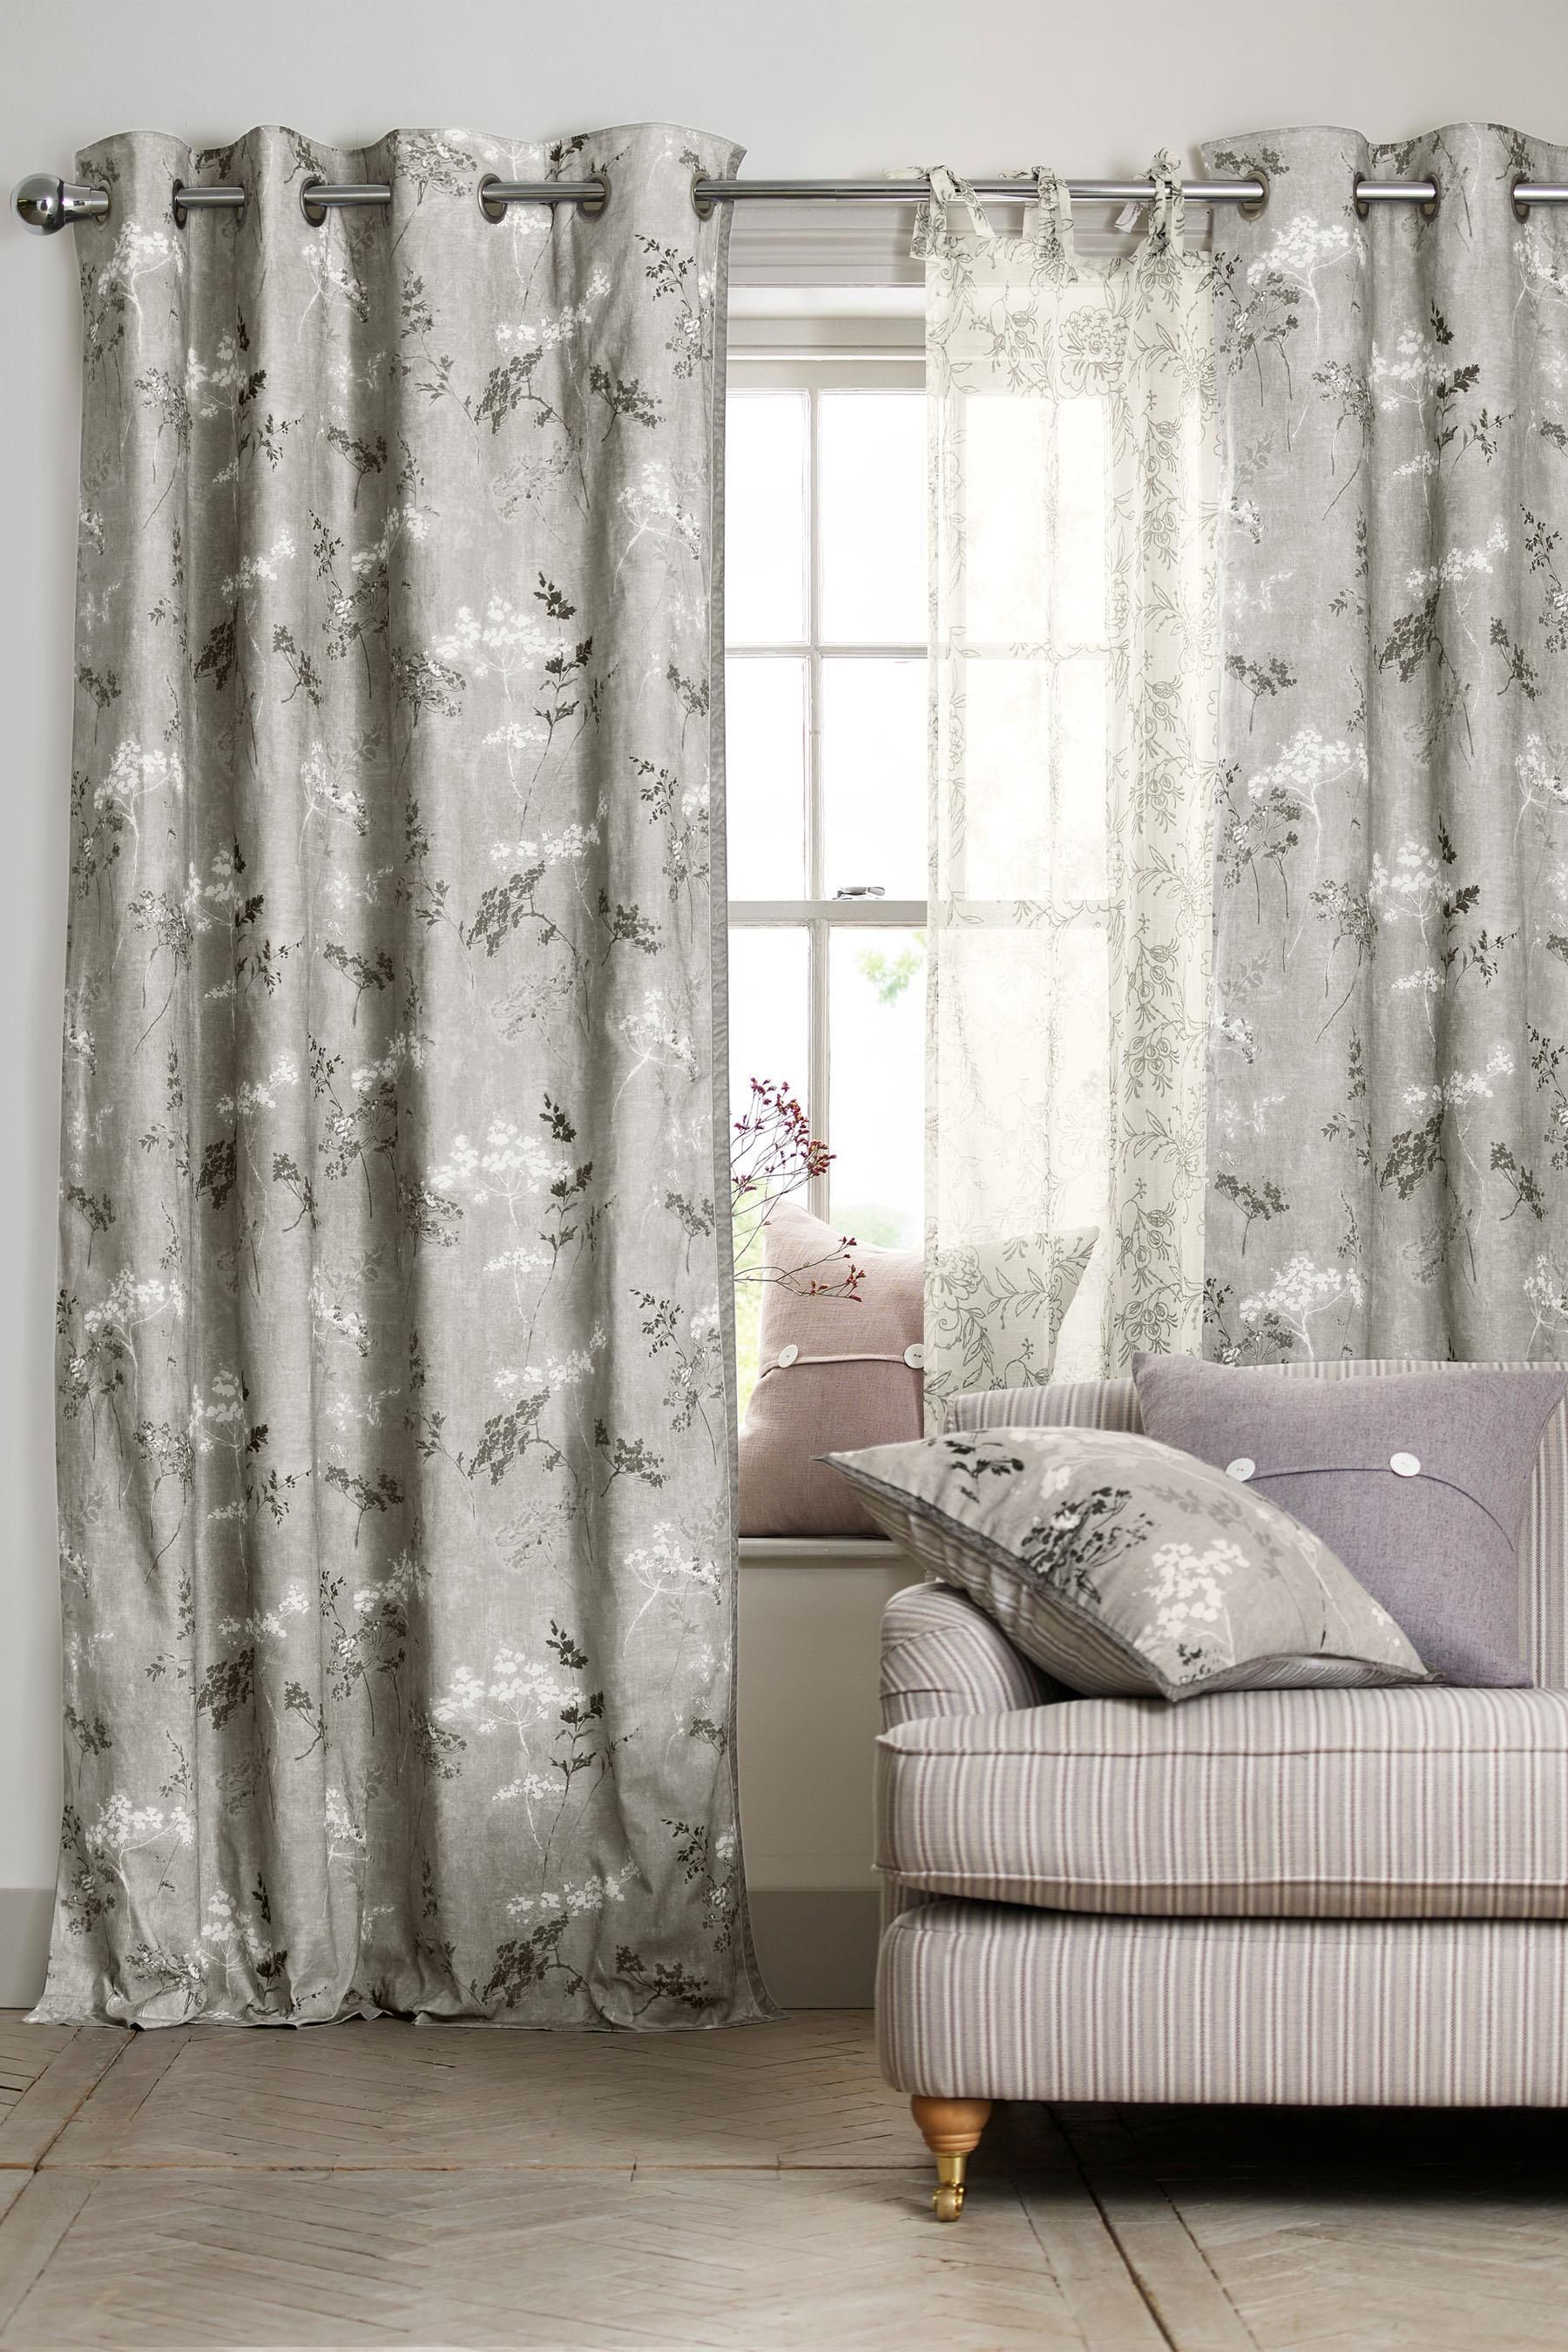 curtain with decor and for elegant stewart inspirational of curtains interesting cheap interior fixed amazing home decorating rods gray rod dark shower martha photos gratograt white